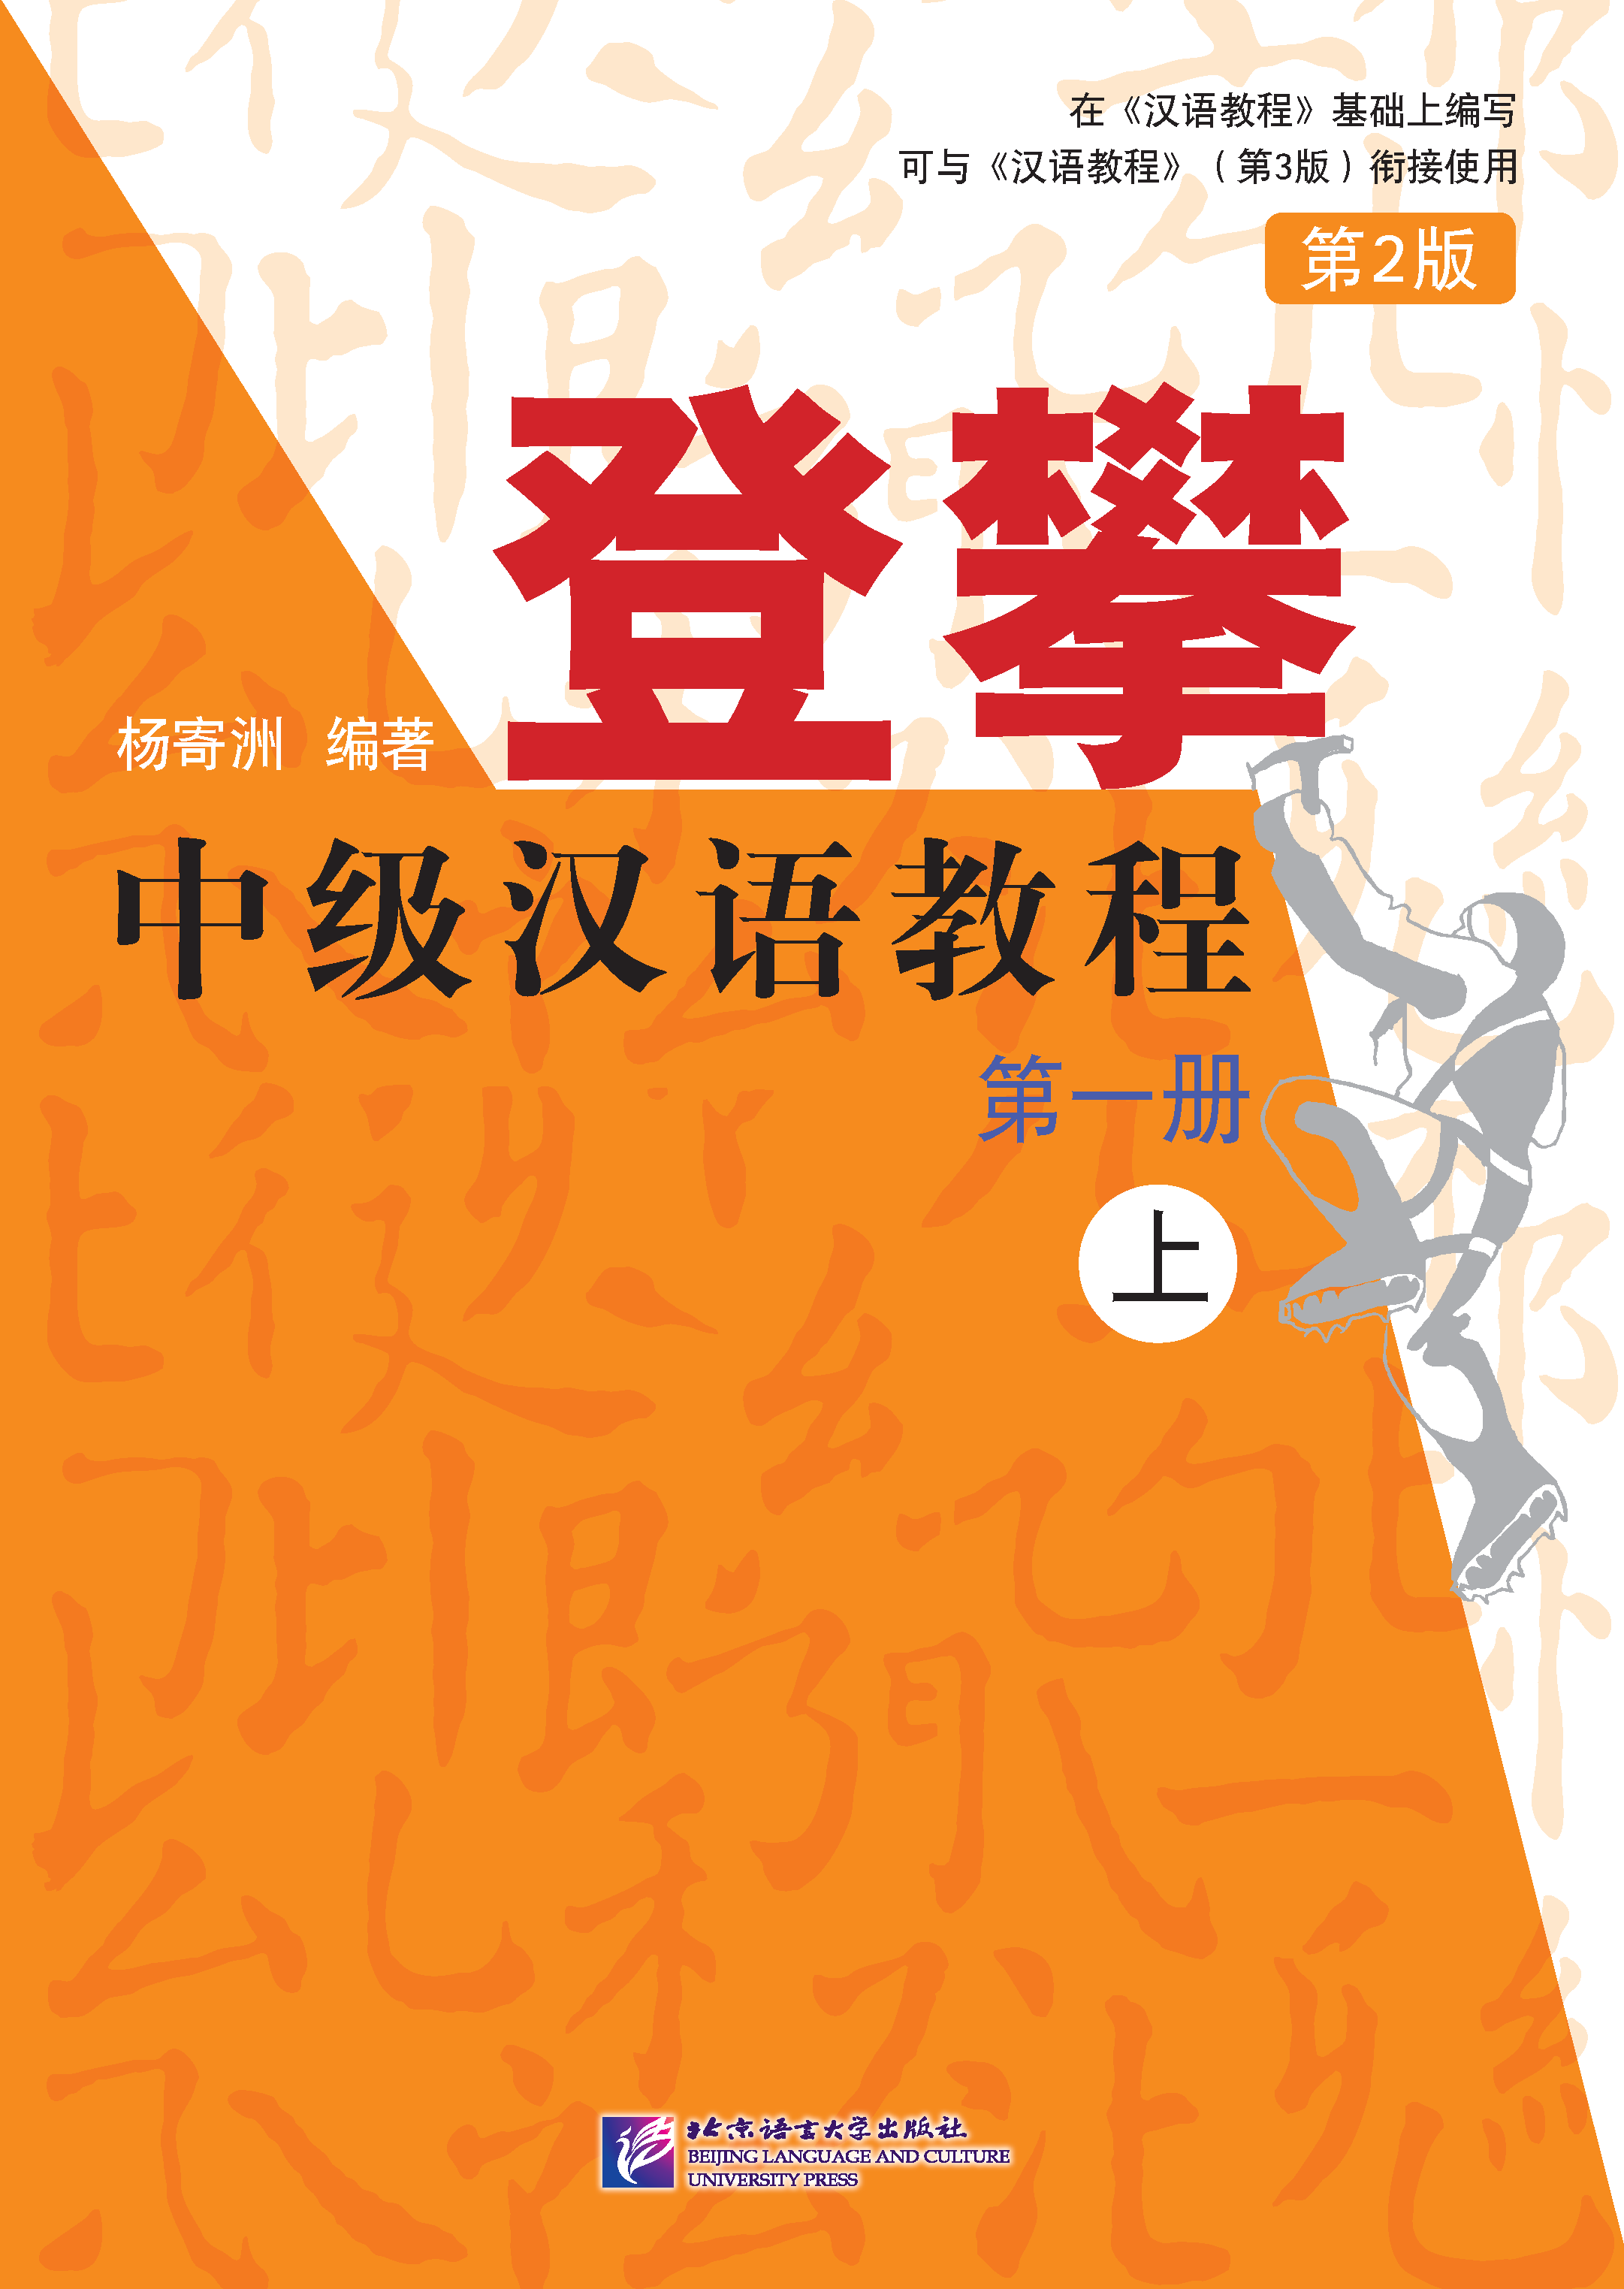 登攀中级汉语教程第一册(上) Climbing Up: An Intermediate Chinese Course Vol. 1-1